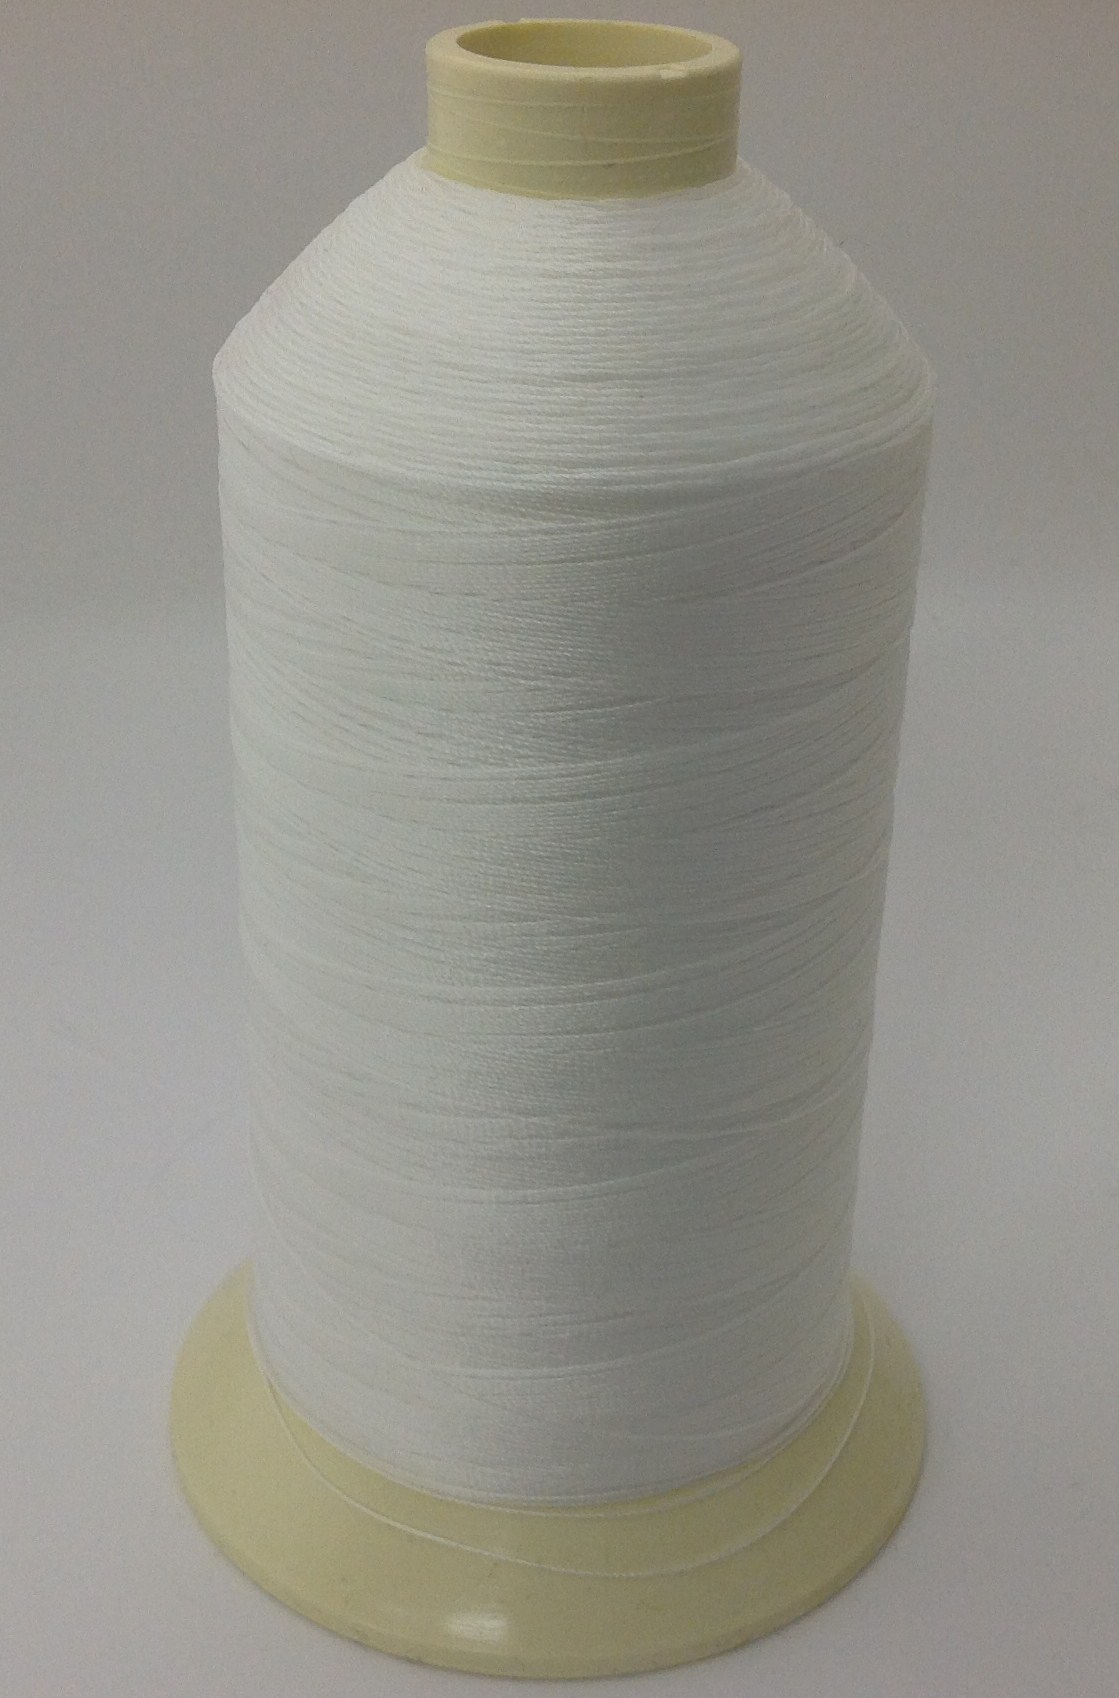 138 Polyester Thread 1 lb Available in Black and White